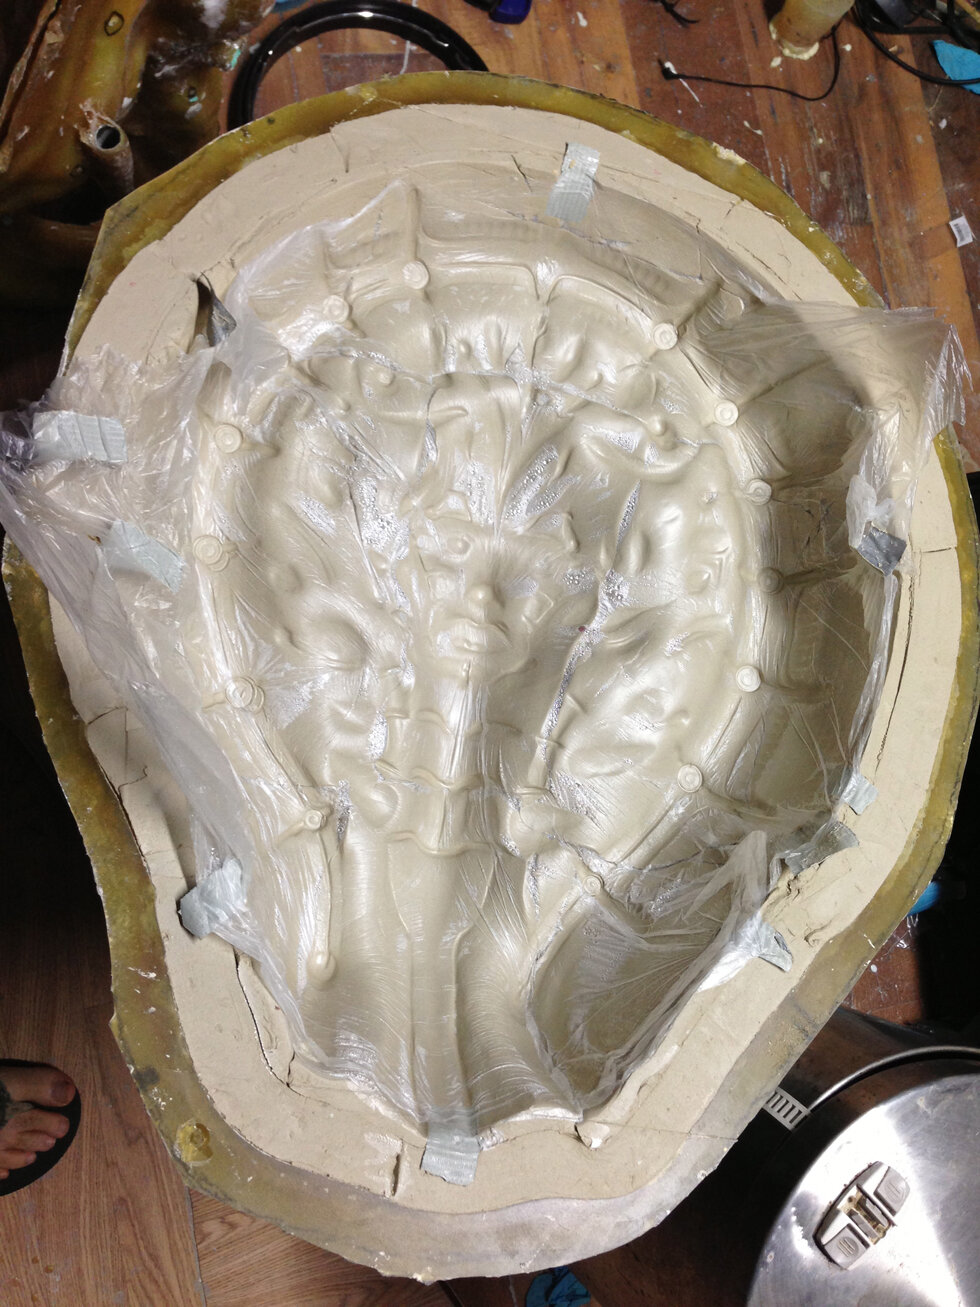 """Here is the fiberglass jacket popped of revalin gthe 3/8"""" layer of clay between the sculpture and the outer jacket. Once I pulled this out the jacket was carefully placed back on top of the sculpture and sealed down. Then liquid green silicone was poured into the new cavity. Once the silicone set in about 16 hours, presto, the first mold was born!"""